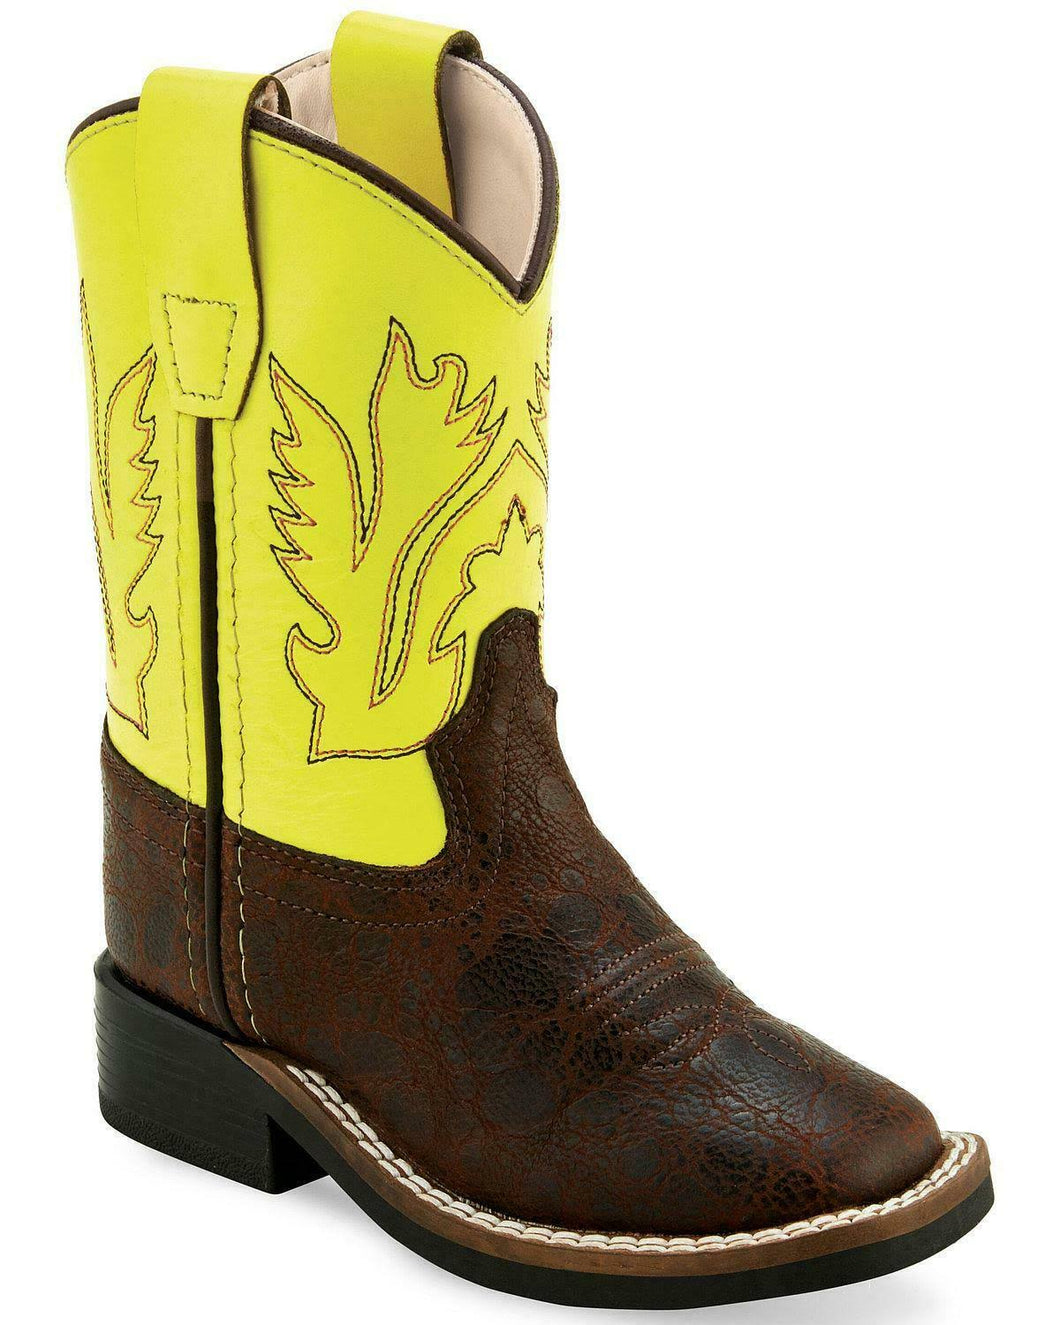 Old West Toddler Brown Square Toe Cowboy Boots with Neon Top